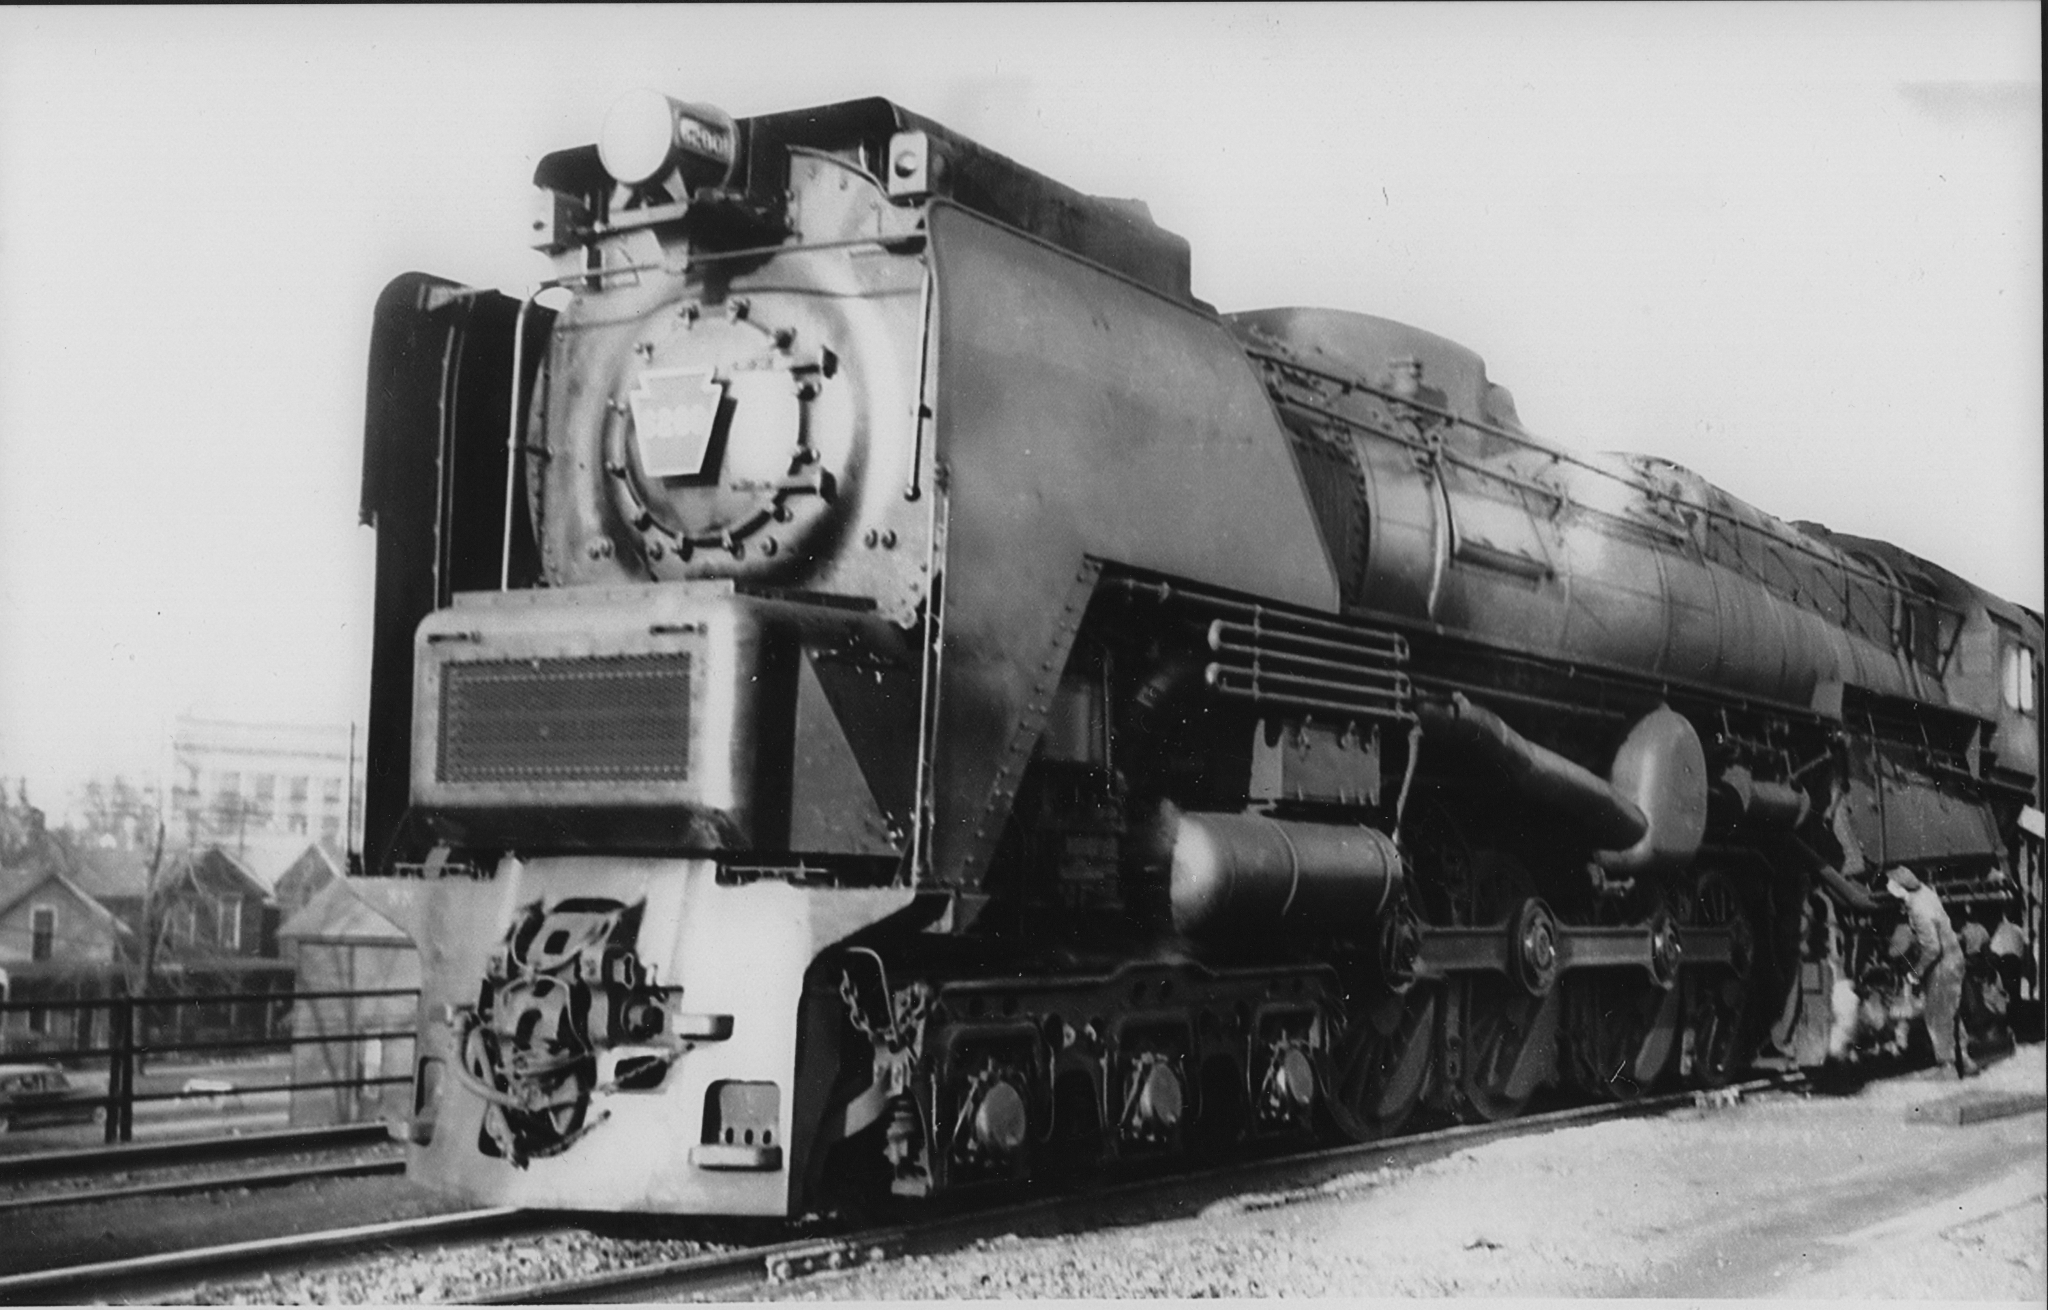 The Pennsylvania Railroad's S2 locomotive used a steam turbine instead of the conventional reciprocating engine.